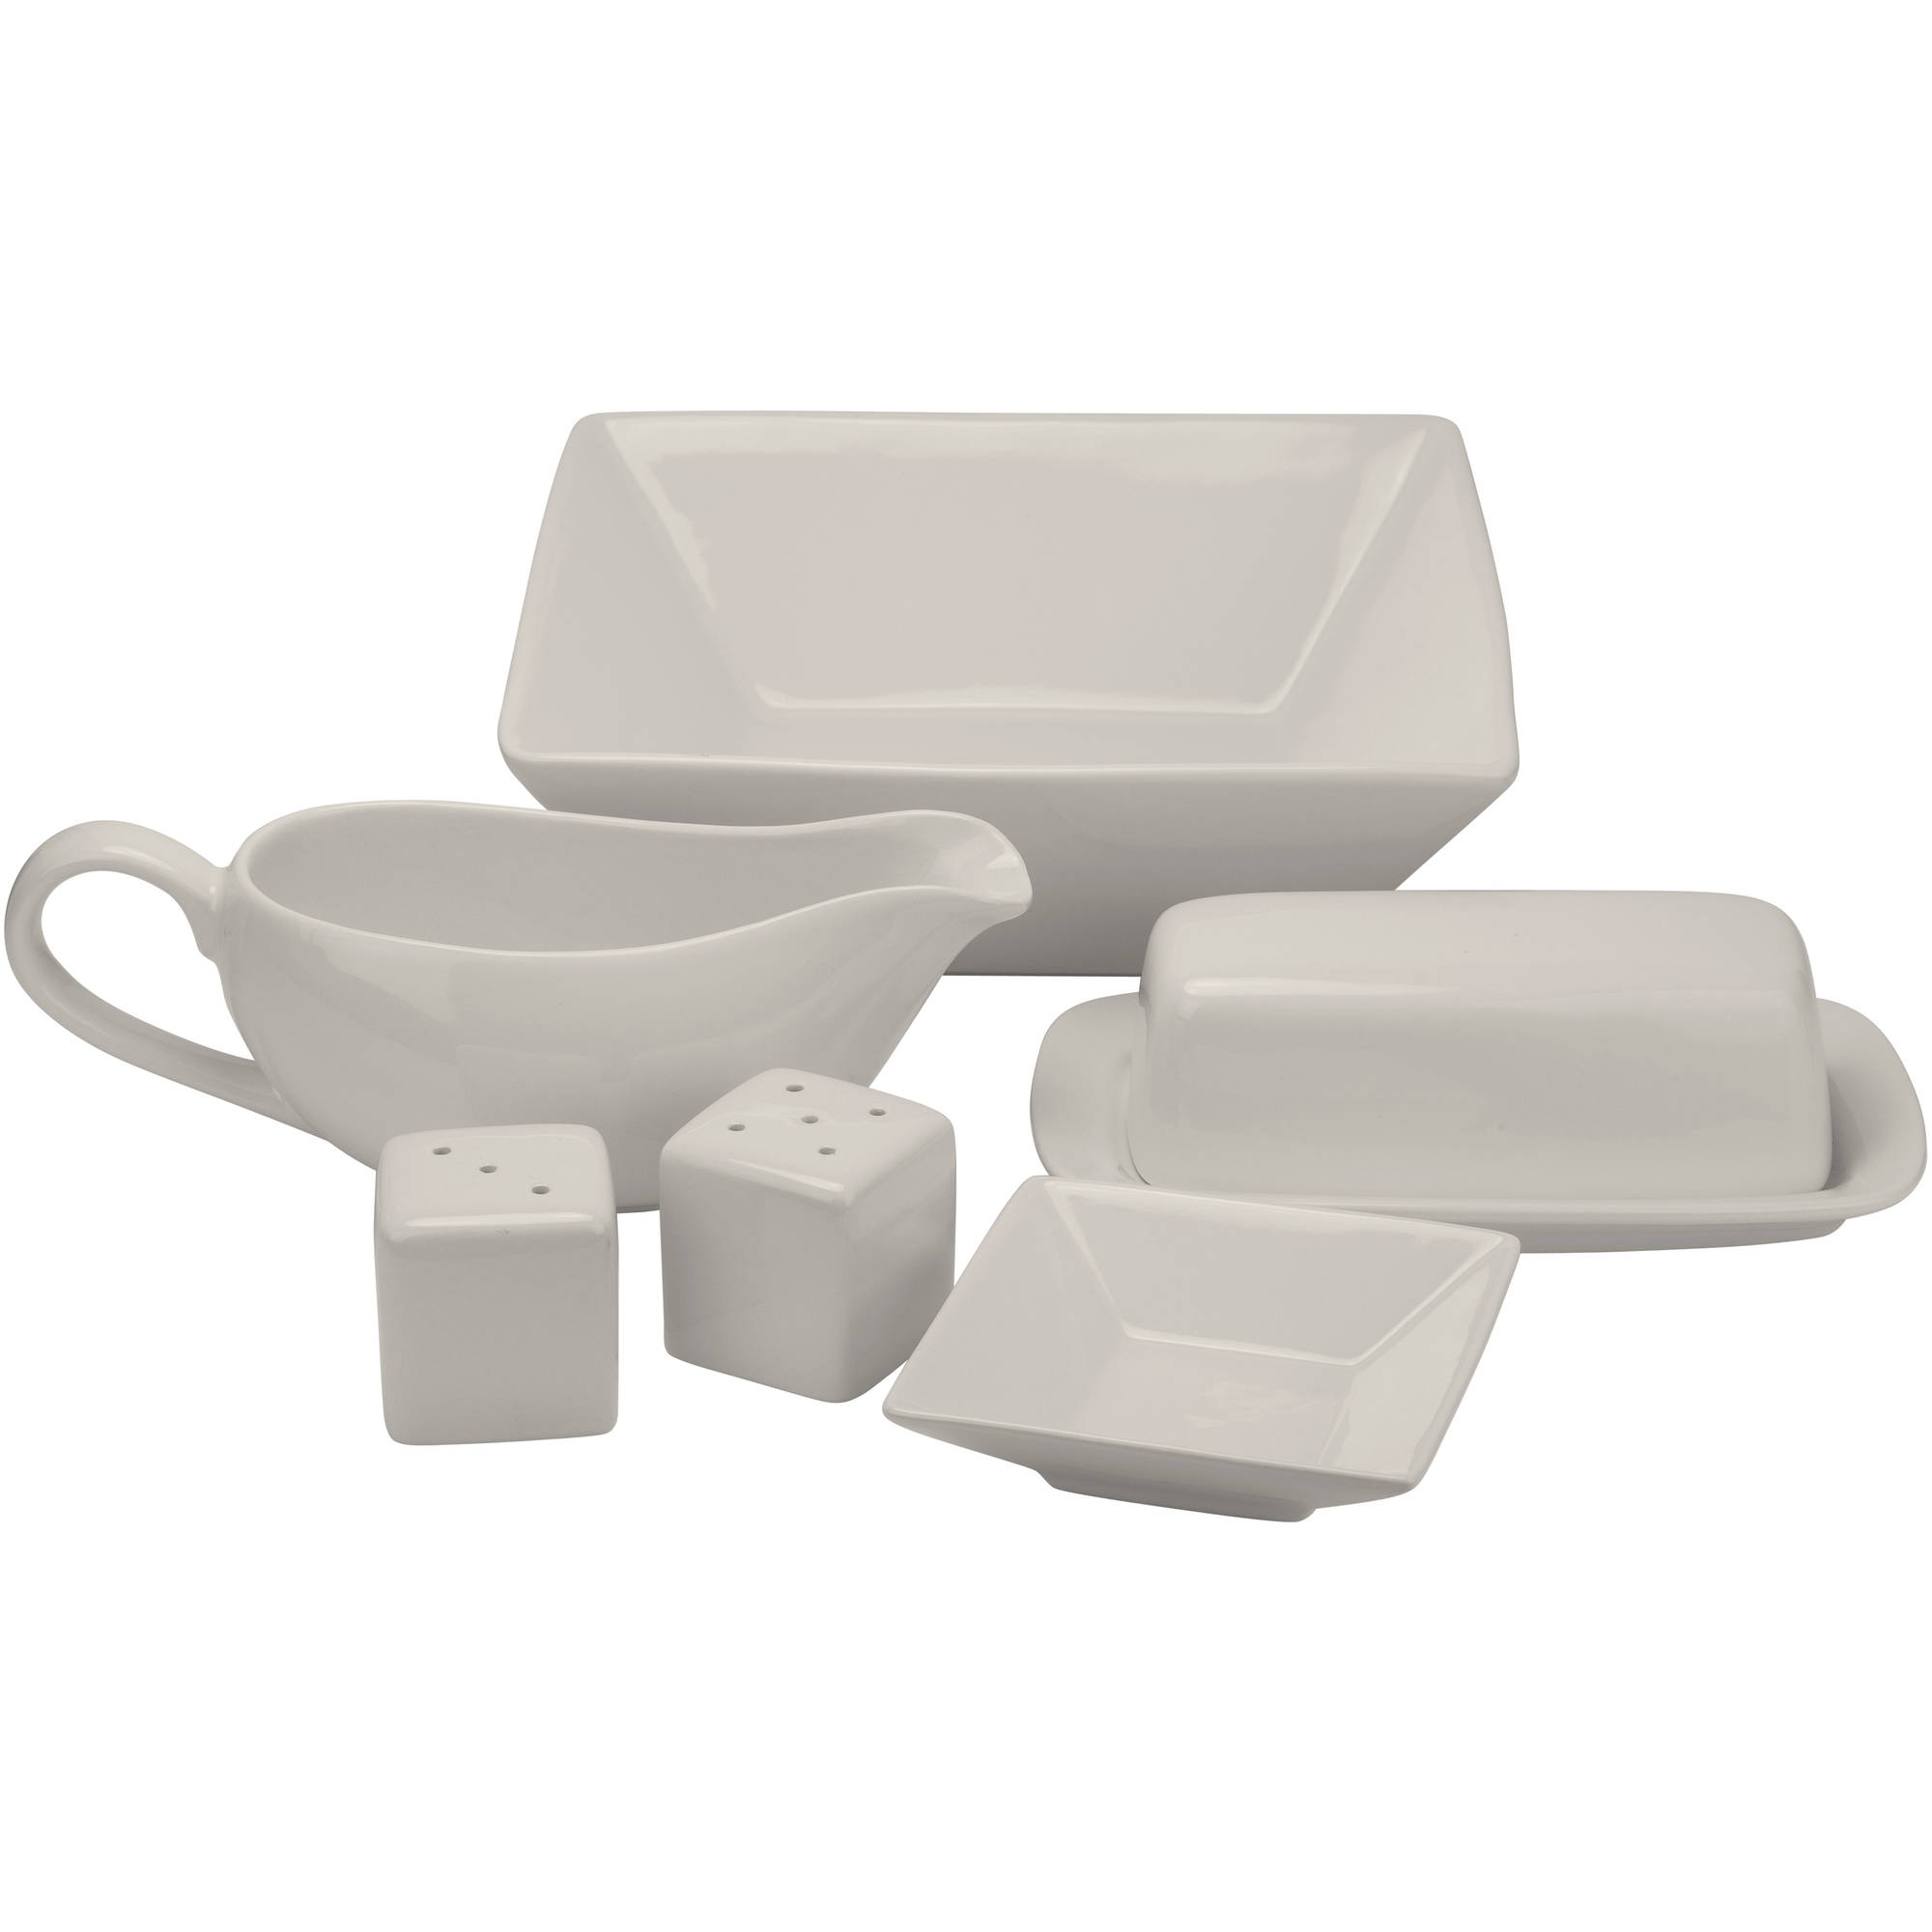 Nova 24-Piece Square Dinnerware Set Plus 10 Bonus Serving Pieces Image 3 of 12  sc 1 st  Walmart & Nova 24-Piece Square Dinnerware Set Plus 10 Bonus Serving Pieces ...